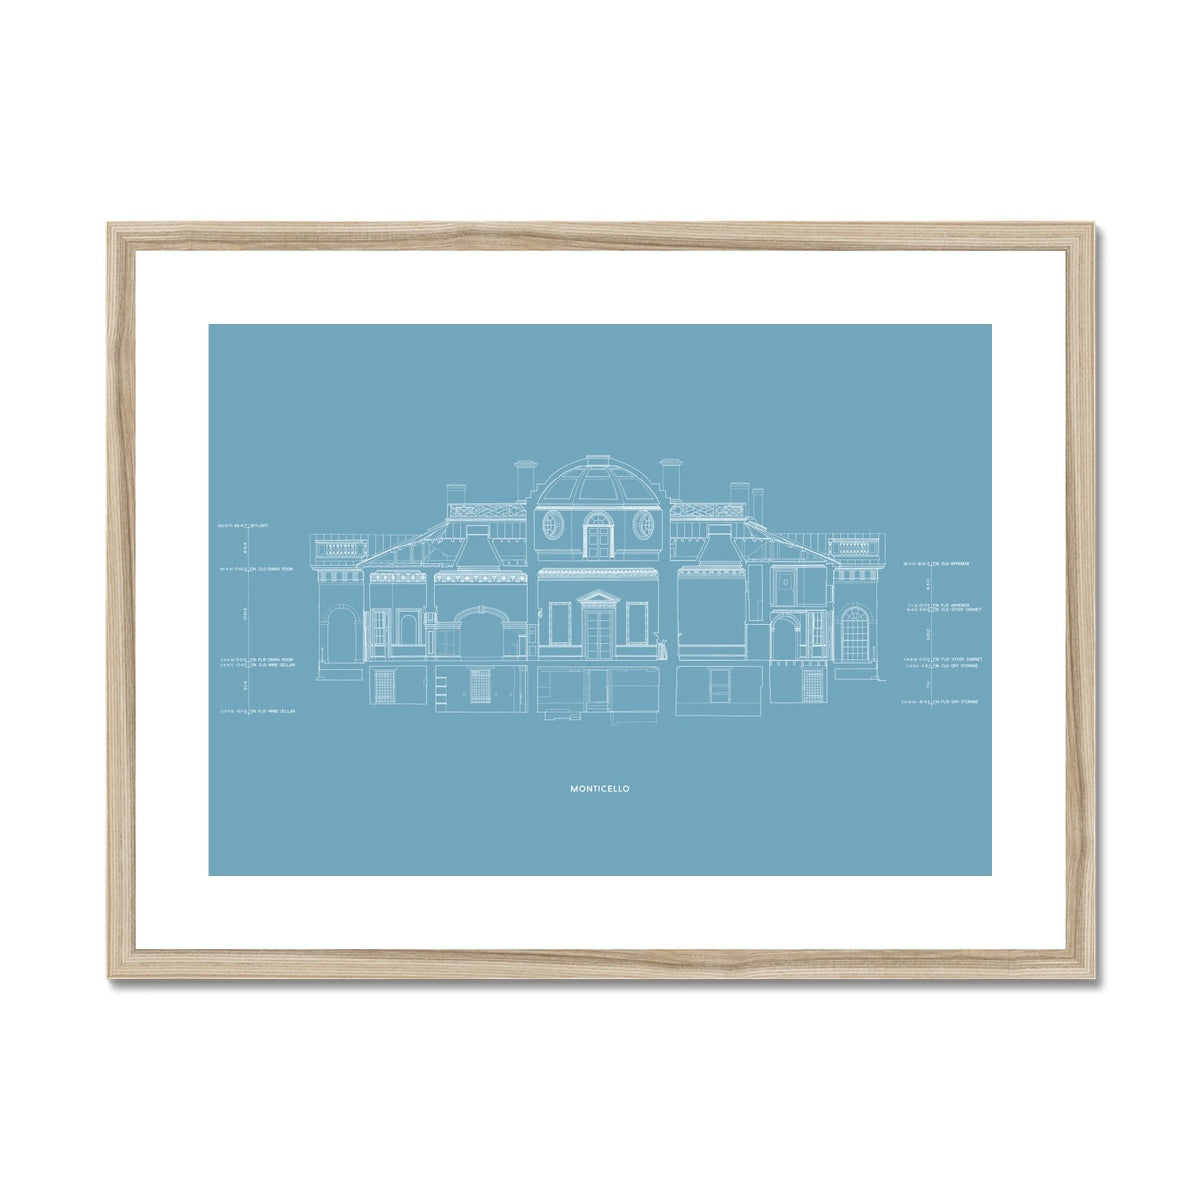 Monticello - West Elevation Cross Section - Blue -  Framed & Mounted Print